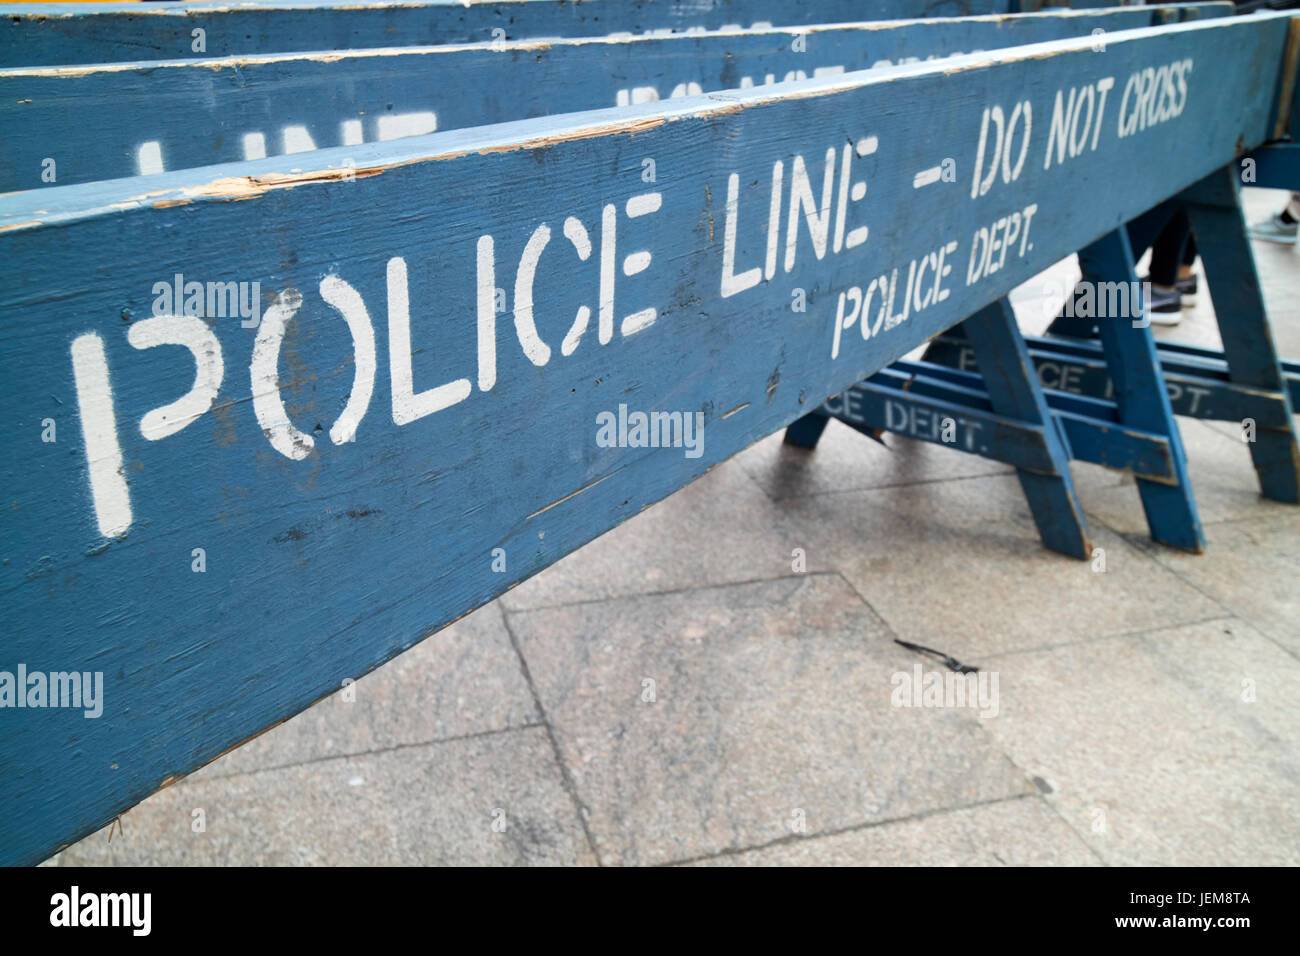 blue wooden police line do not cross nypd crowd traffic barrier New York City USA - Stock Image